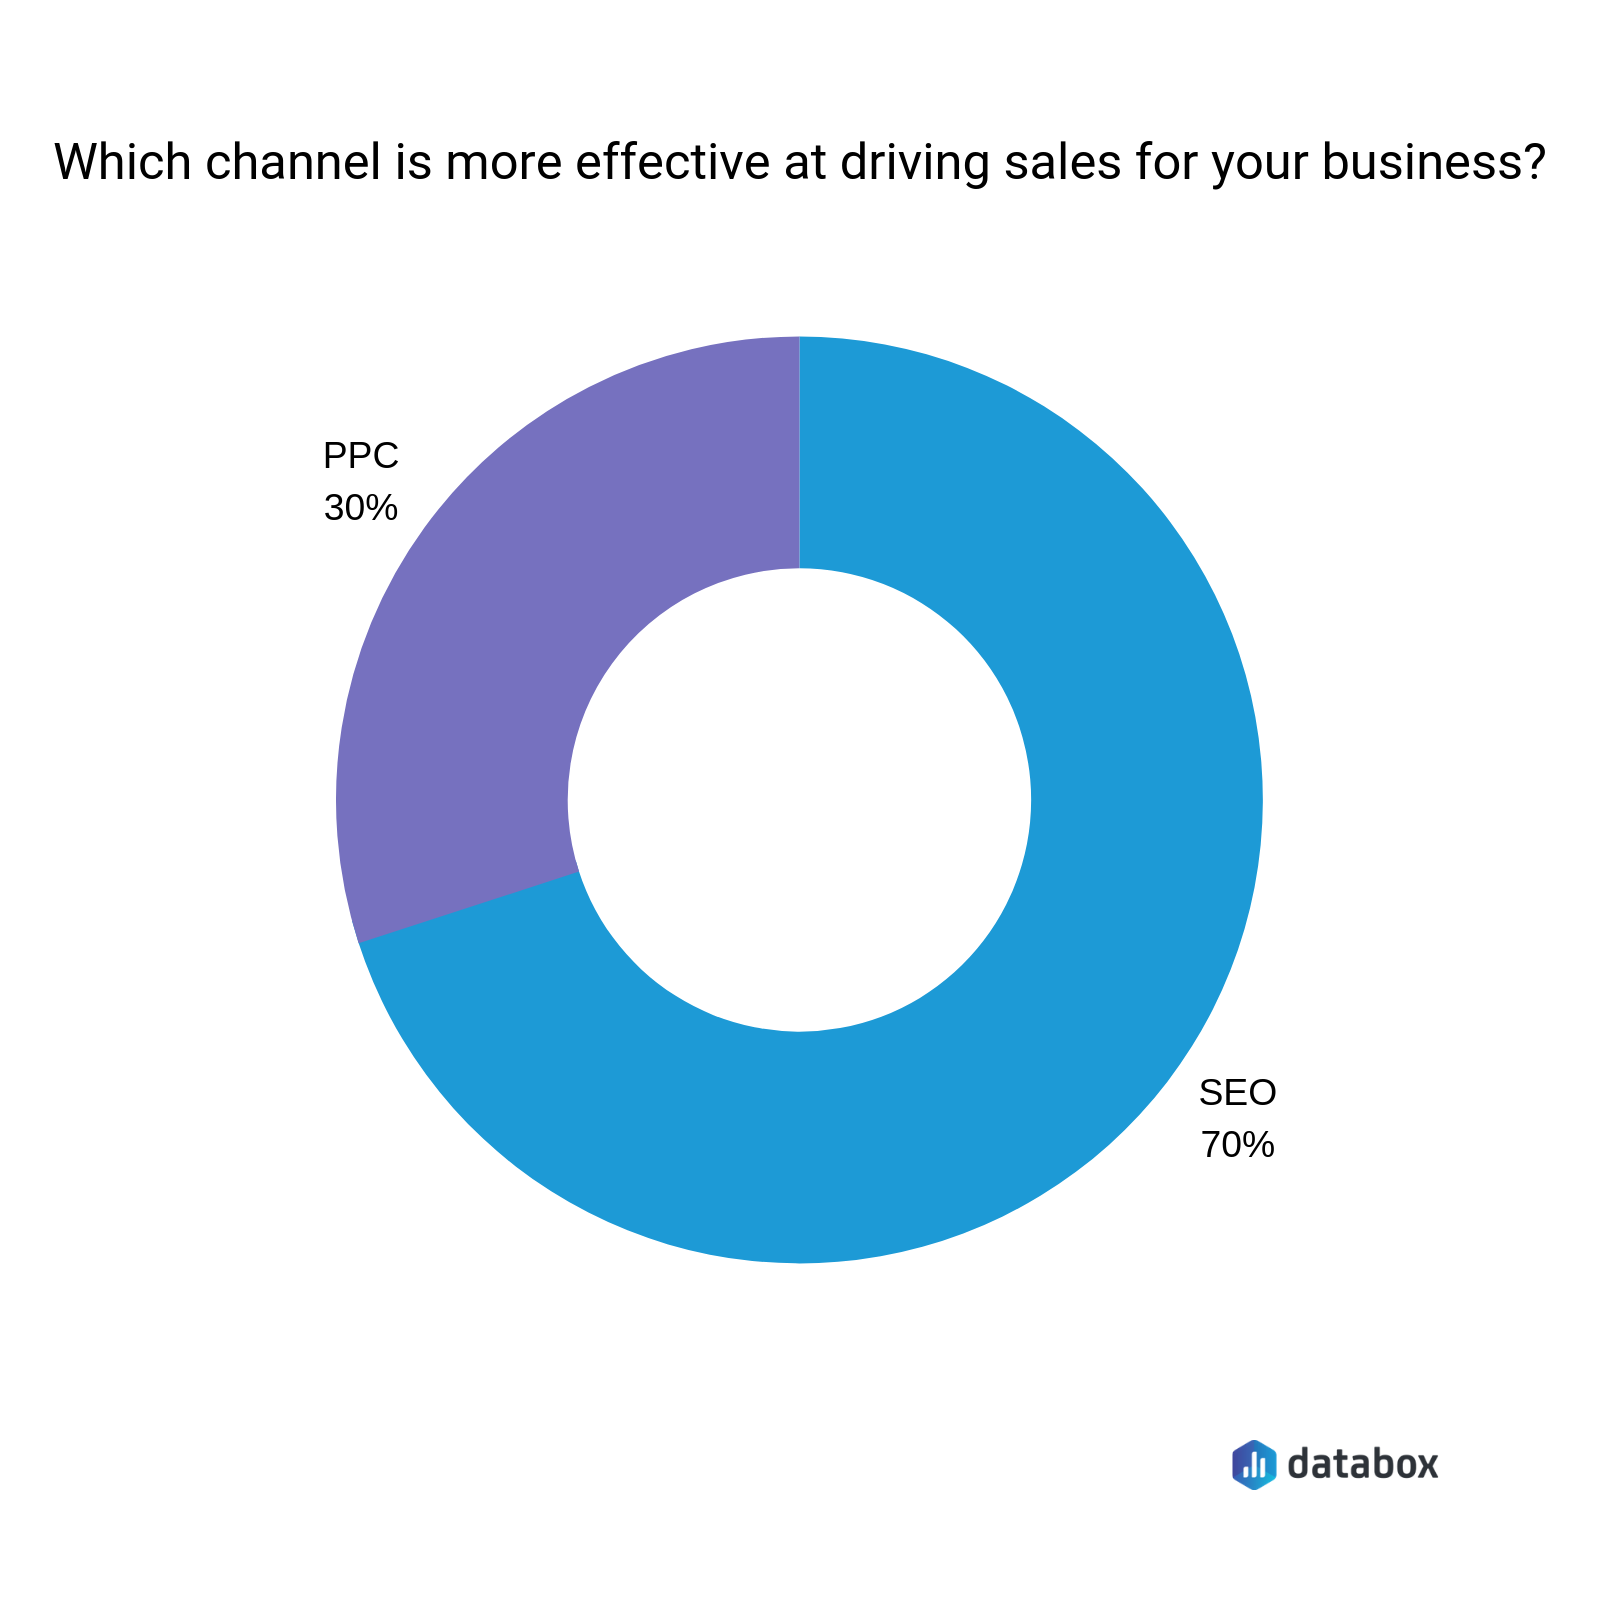 70% of marketers say that SEO is more effective than PPC